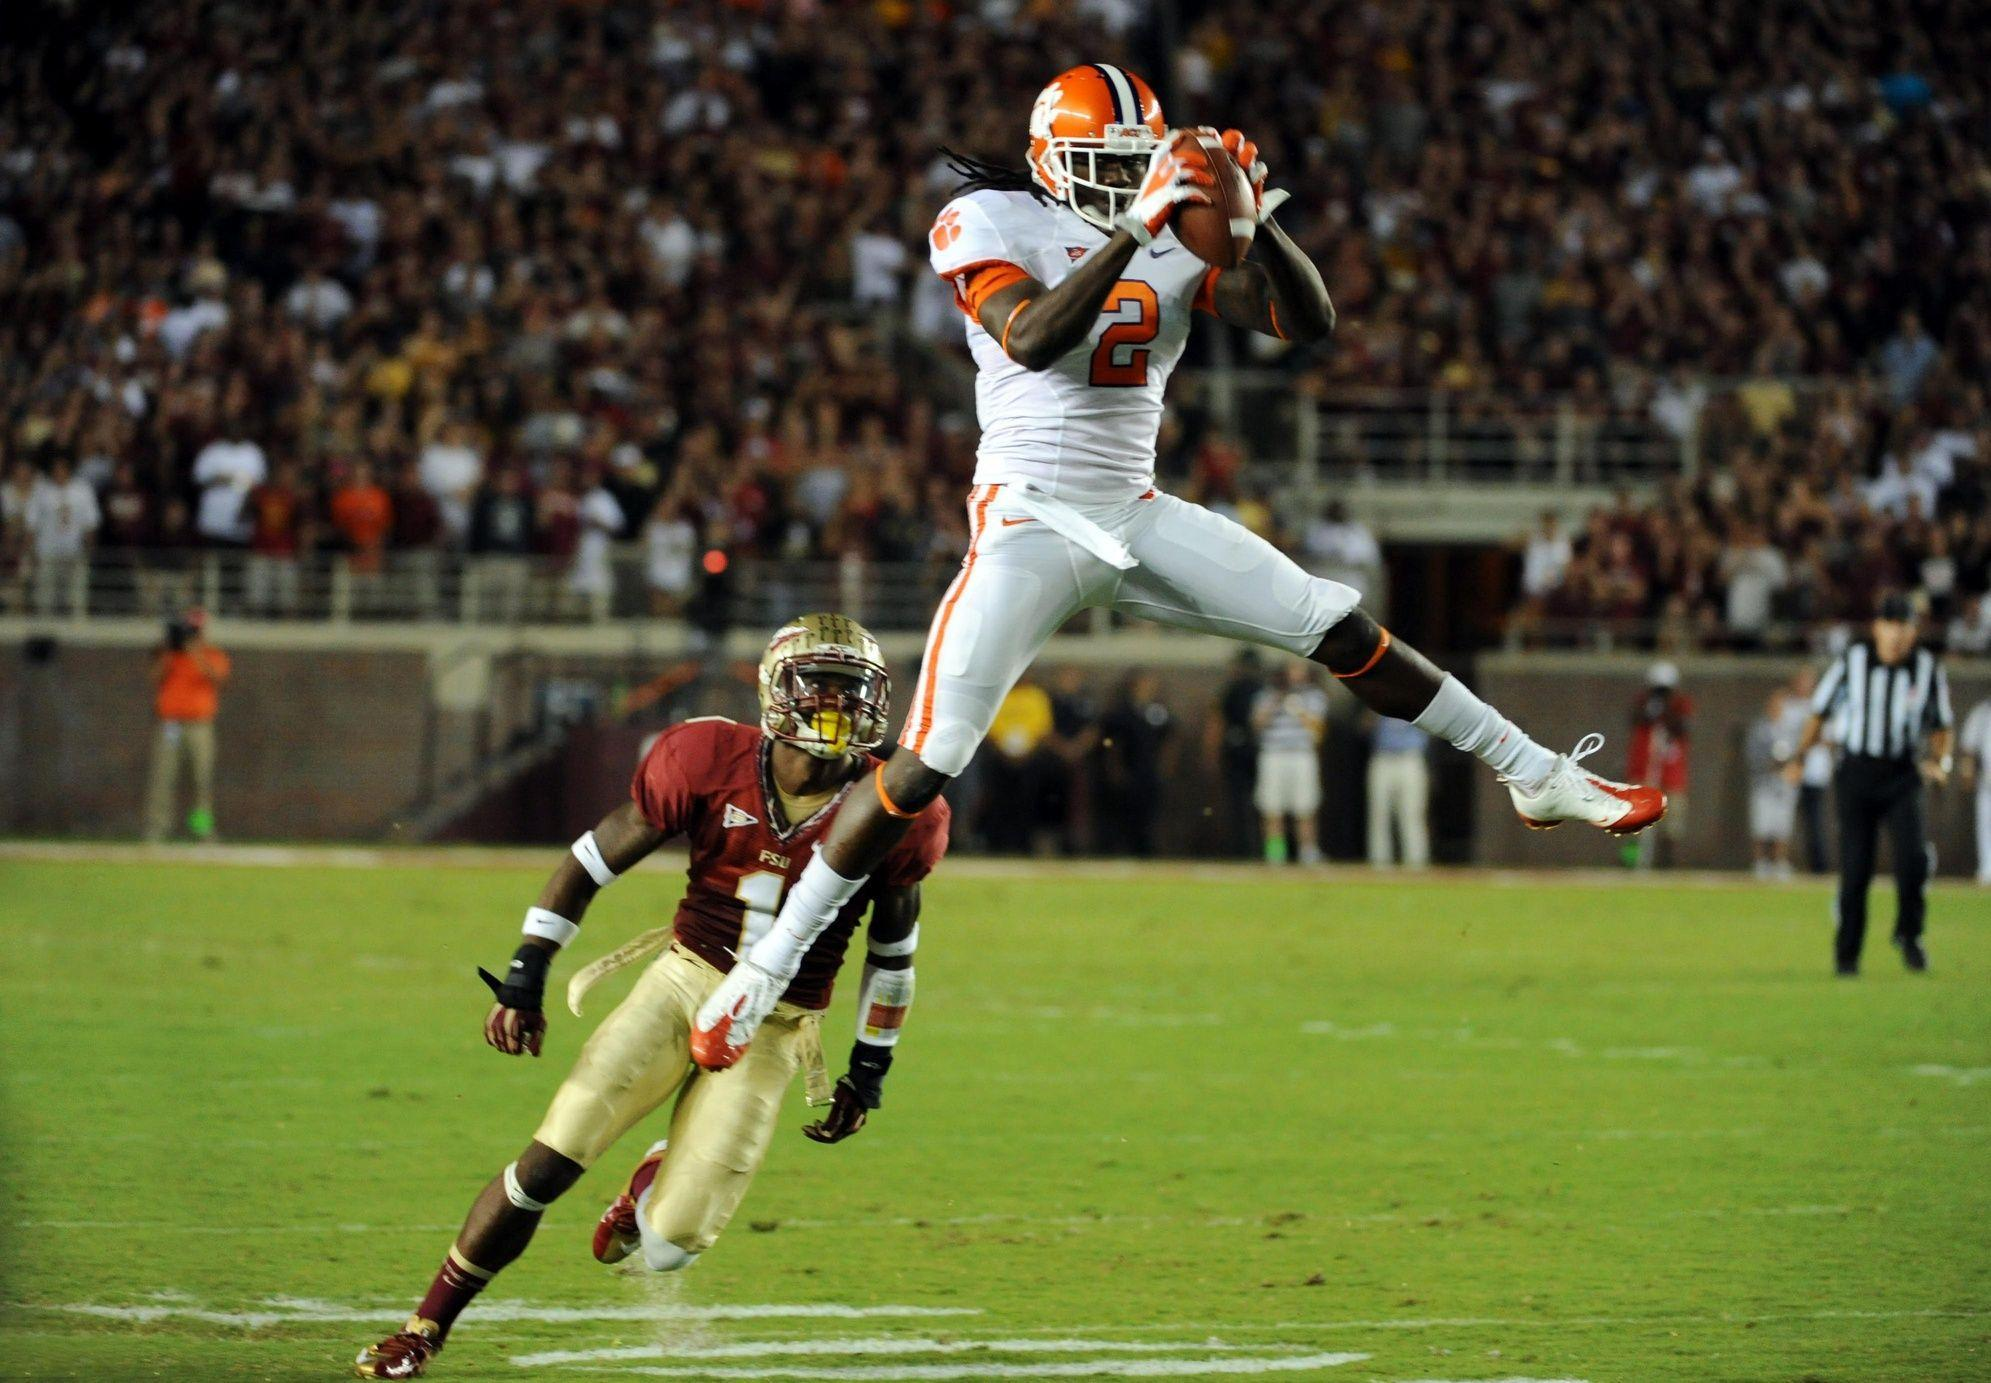 2014 NFL Mock Draft: Tampa Bay Buccaneers Select... - Behind the ...